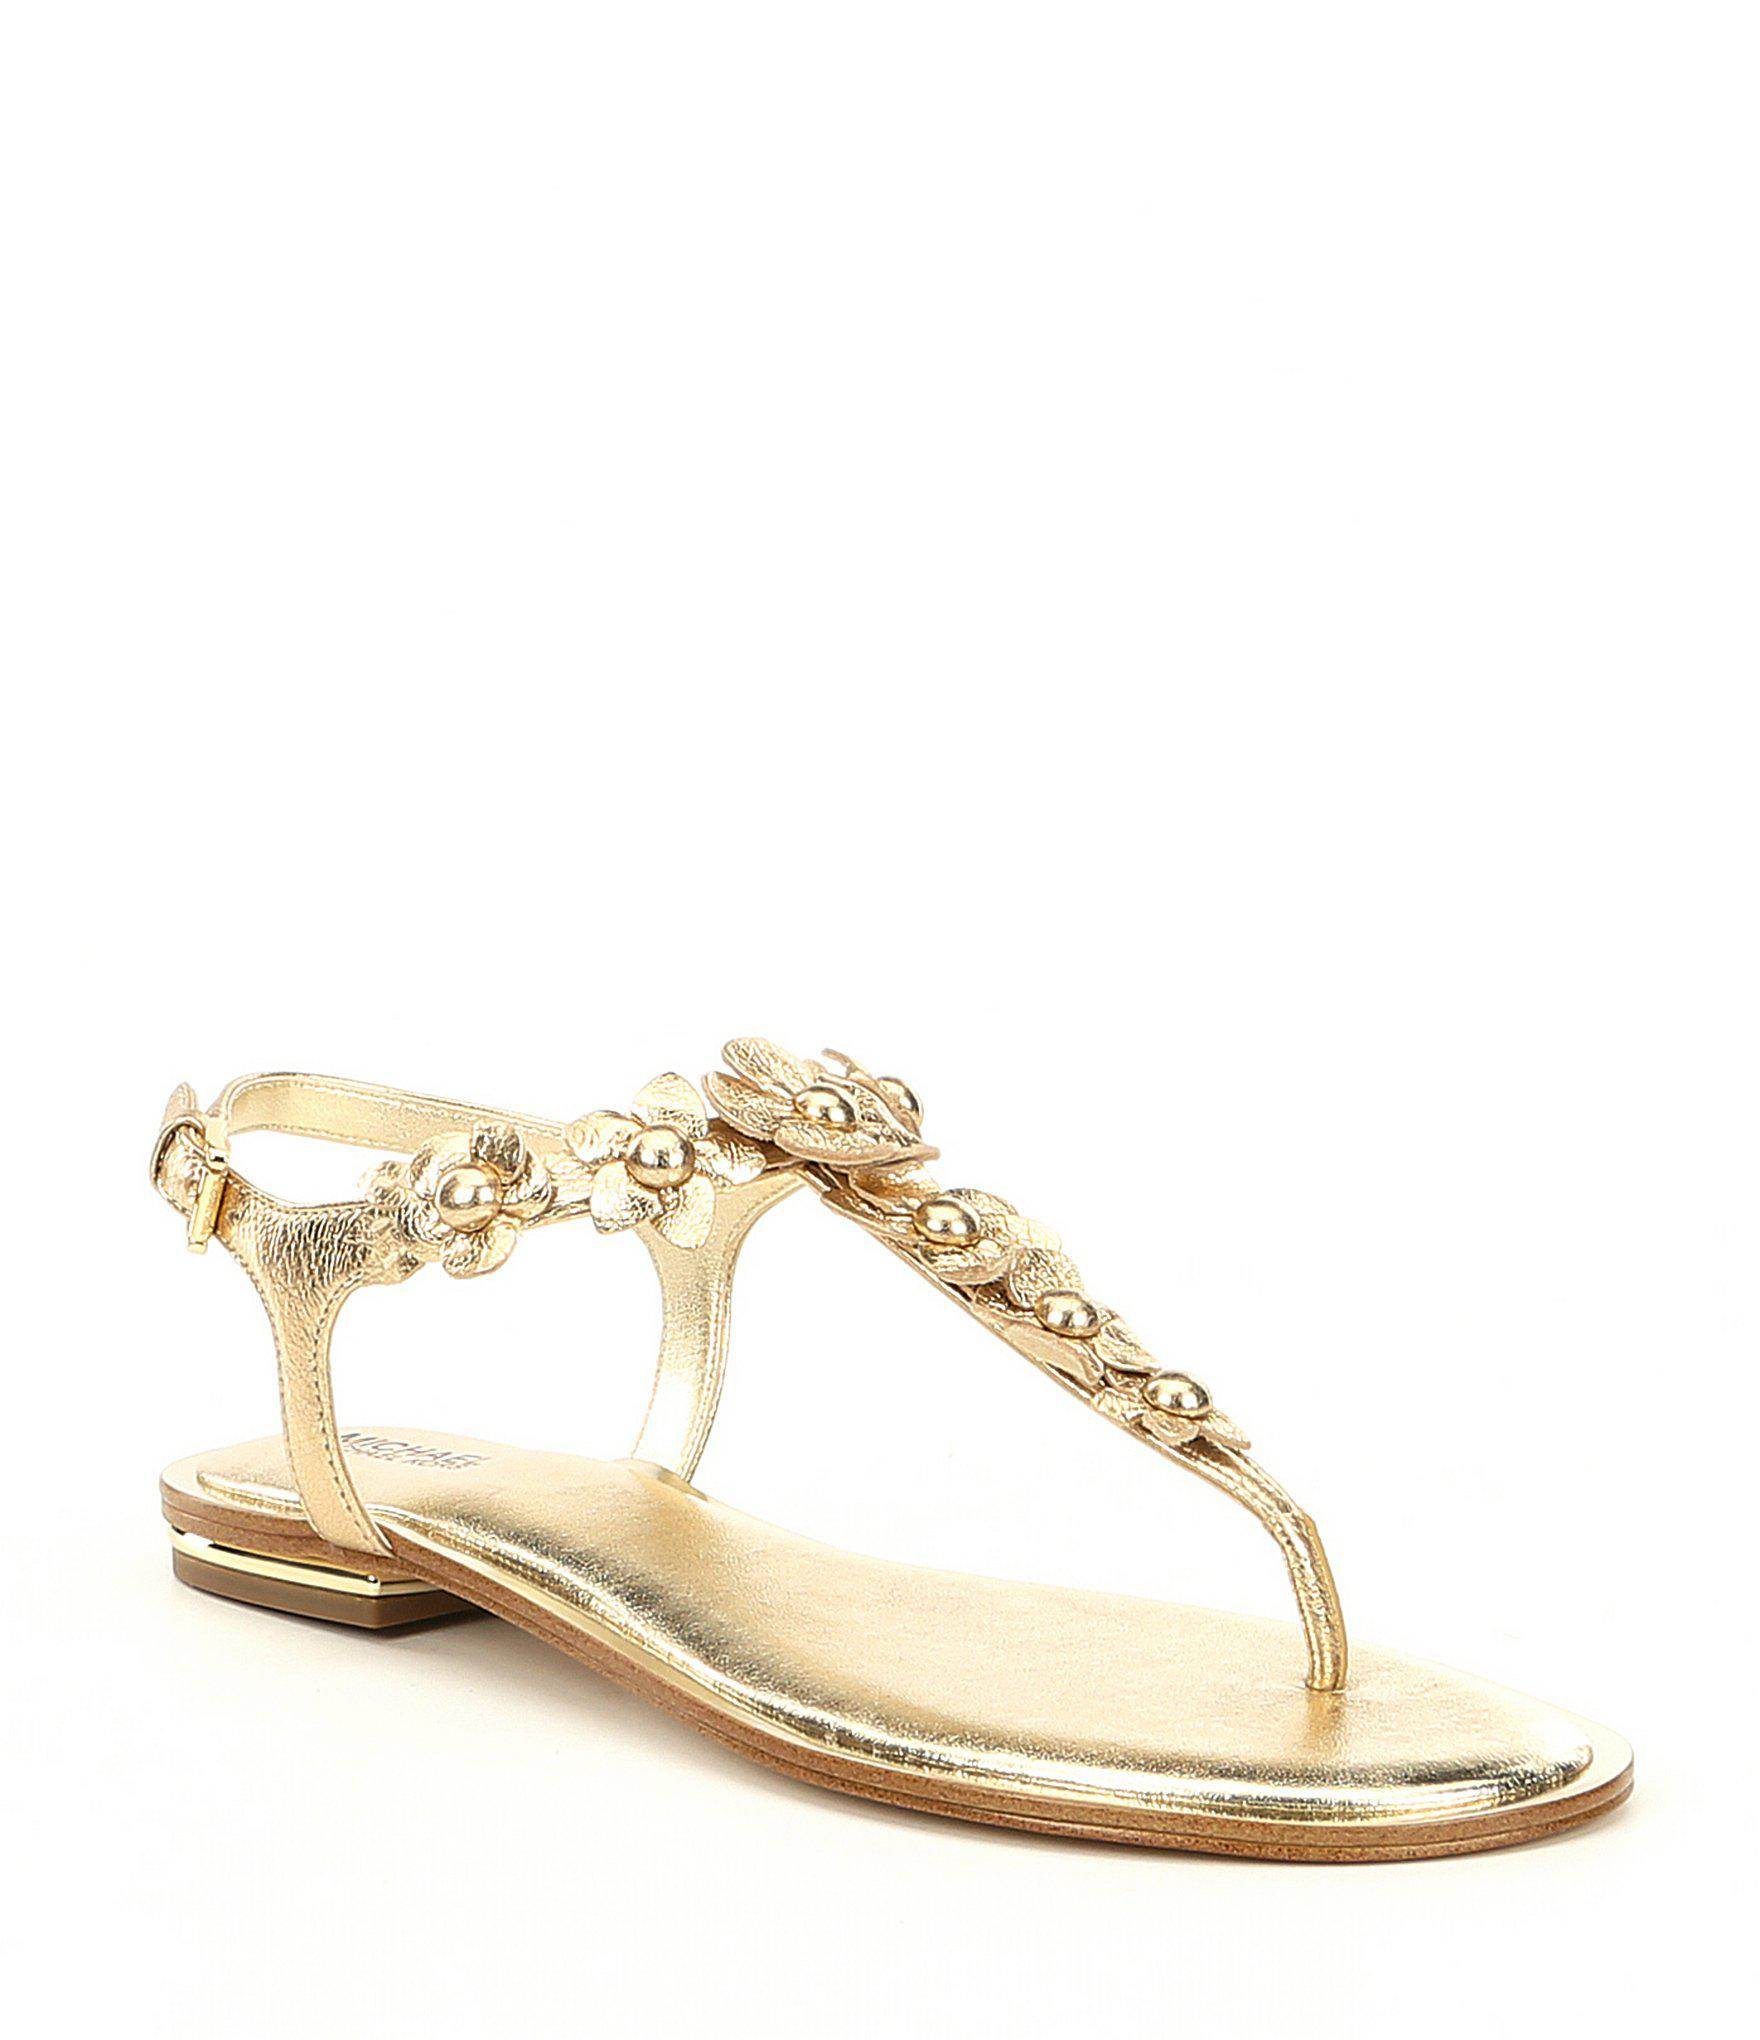 816055b6b862 Lyst - MICHAEL Michael Kors Tricia Metallic Floral Thong Sandals in ...